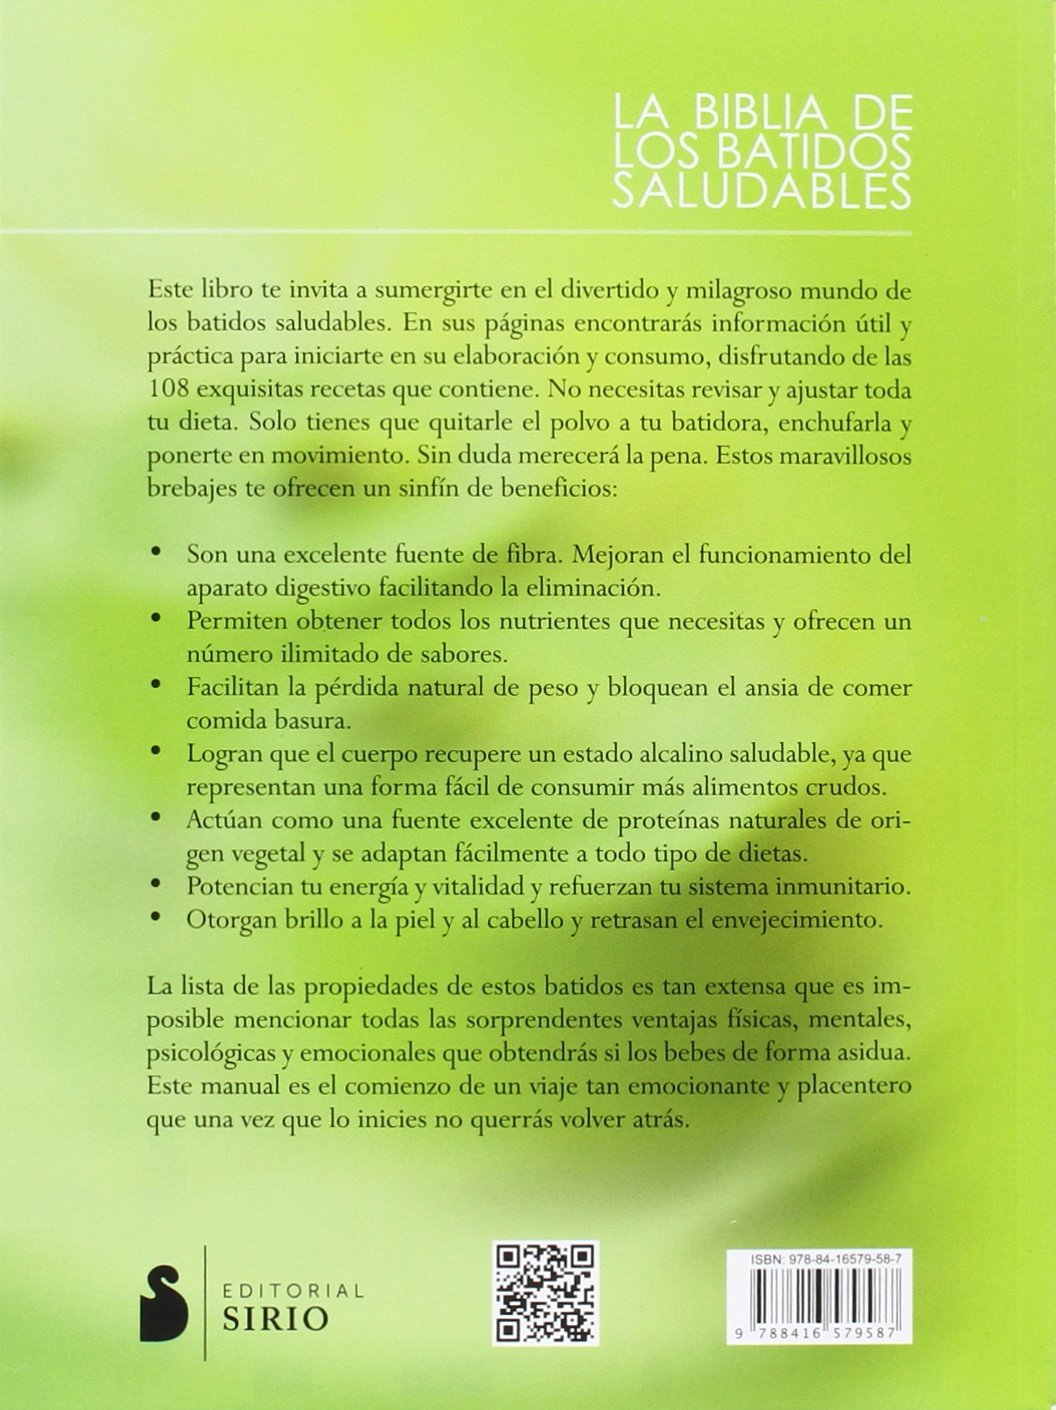 Amazon.com: La biblia de los batidos saludables (Spanish Edition) (9788416579587): Farnoosh Brock: Books